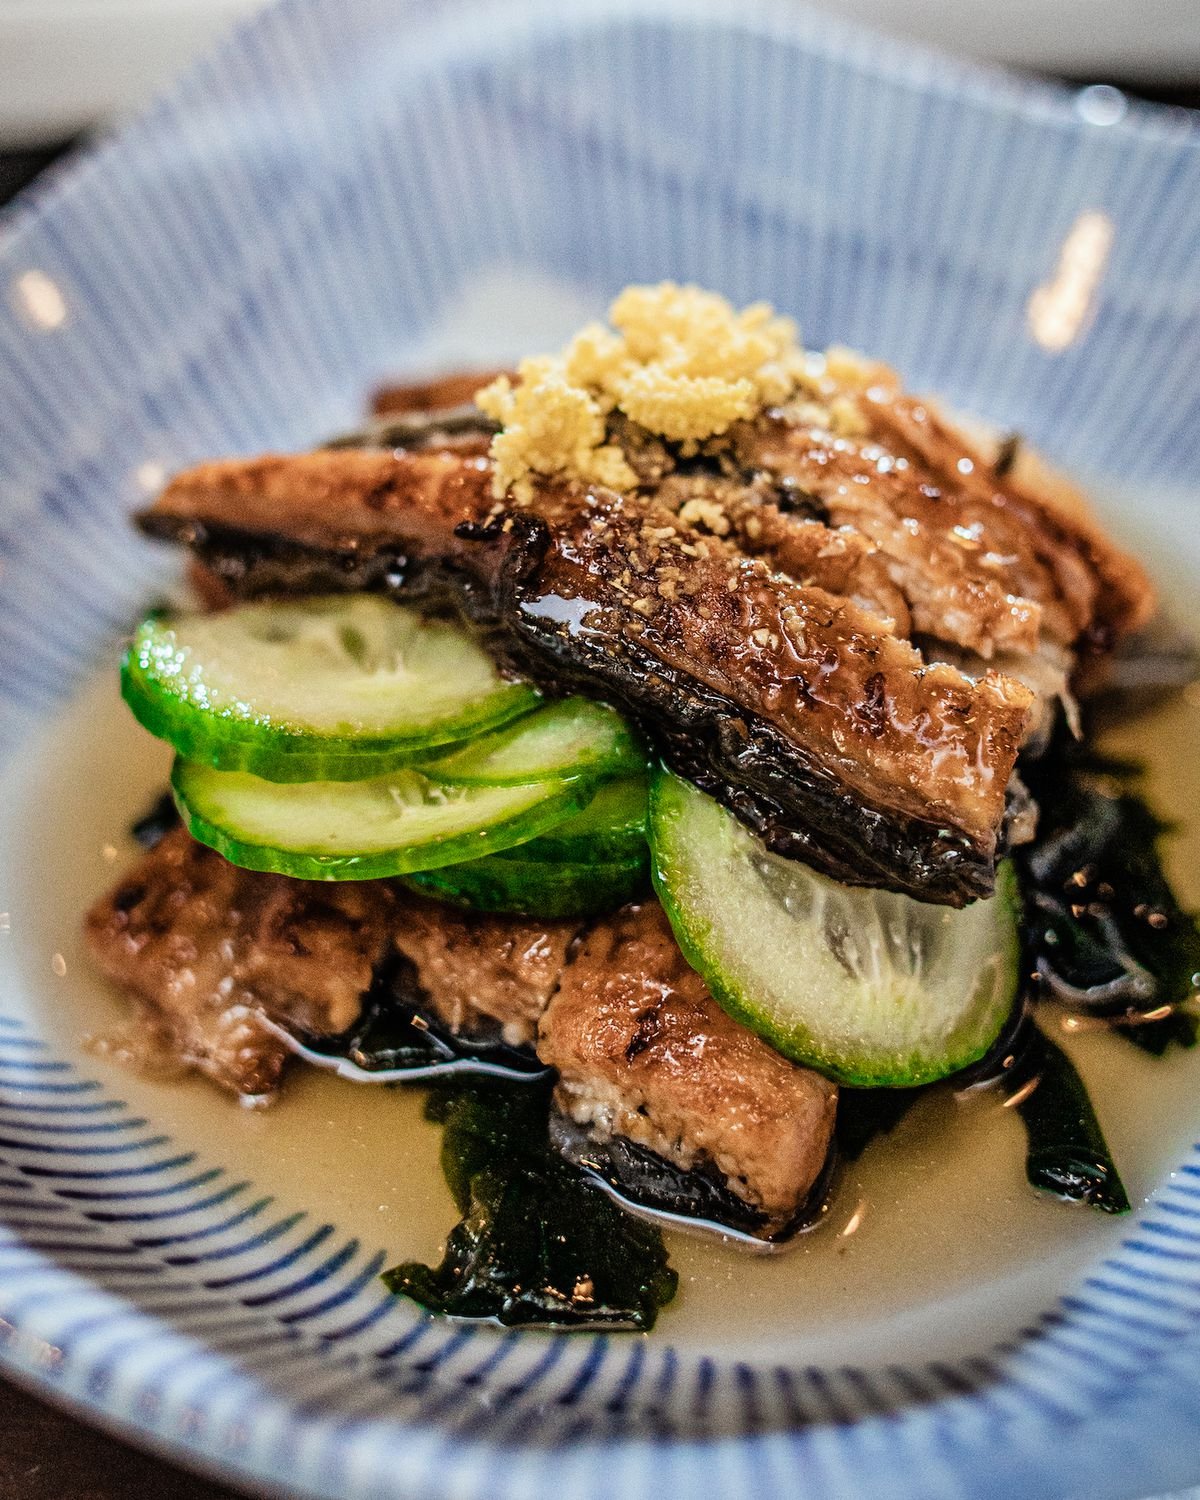 Pieces of browned eel stacked on a plate with a layer of sliced cucumber in between and some crumbled egg yolks on top.